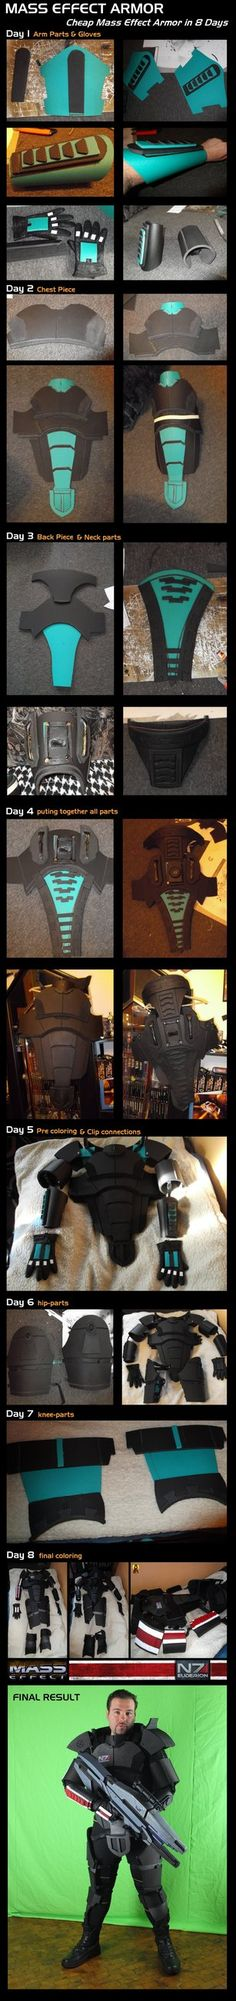 Mass Effect Armor Step by Step Overview Once I've found here on Dev-Art many good Mass Effect costumes, I wanted to make one for myself... In this picture you can witness the various stages of the ...